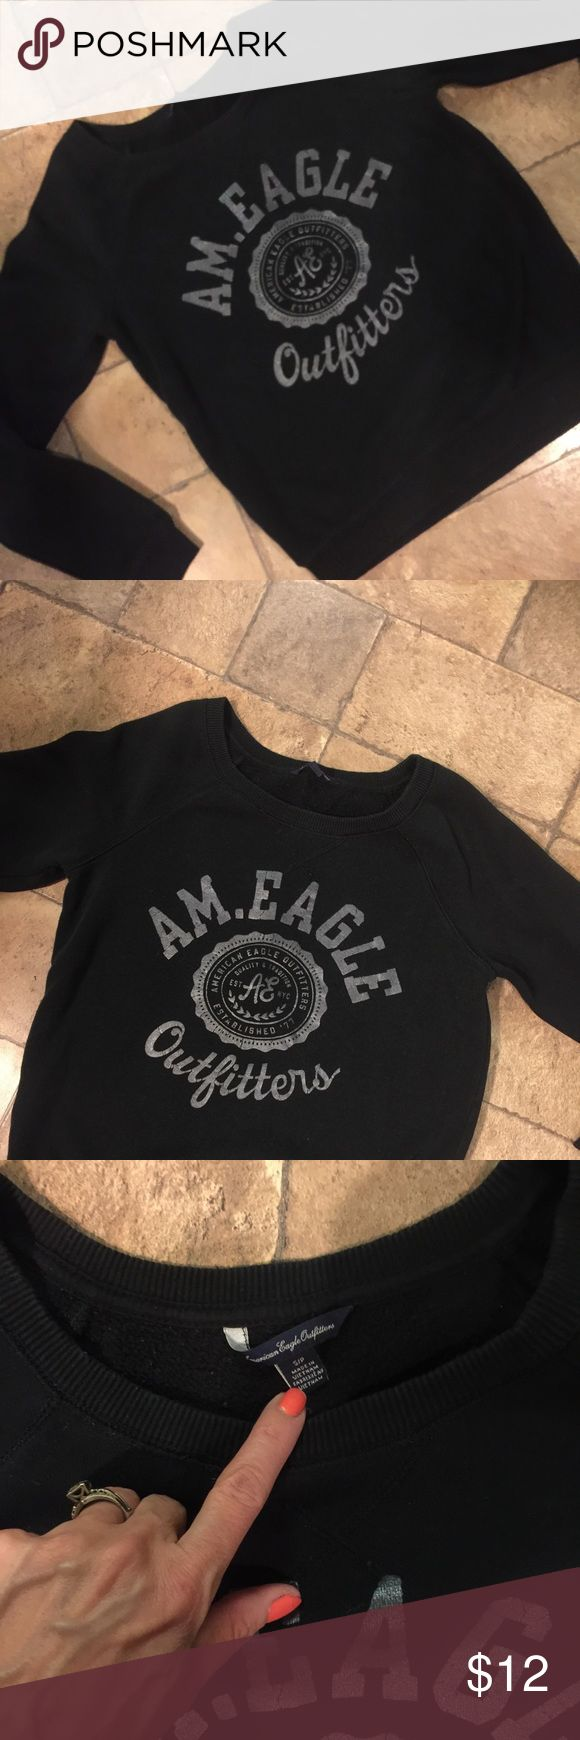 American Eagle Sweatshirt Sz S and in great used condition.Cleaning out my daughter's room and making some room for more clothes that will be on here in 6 months.Lol American Eagle Outfitters Tops Sweatshirts & Hoodies